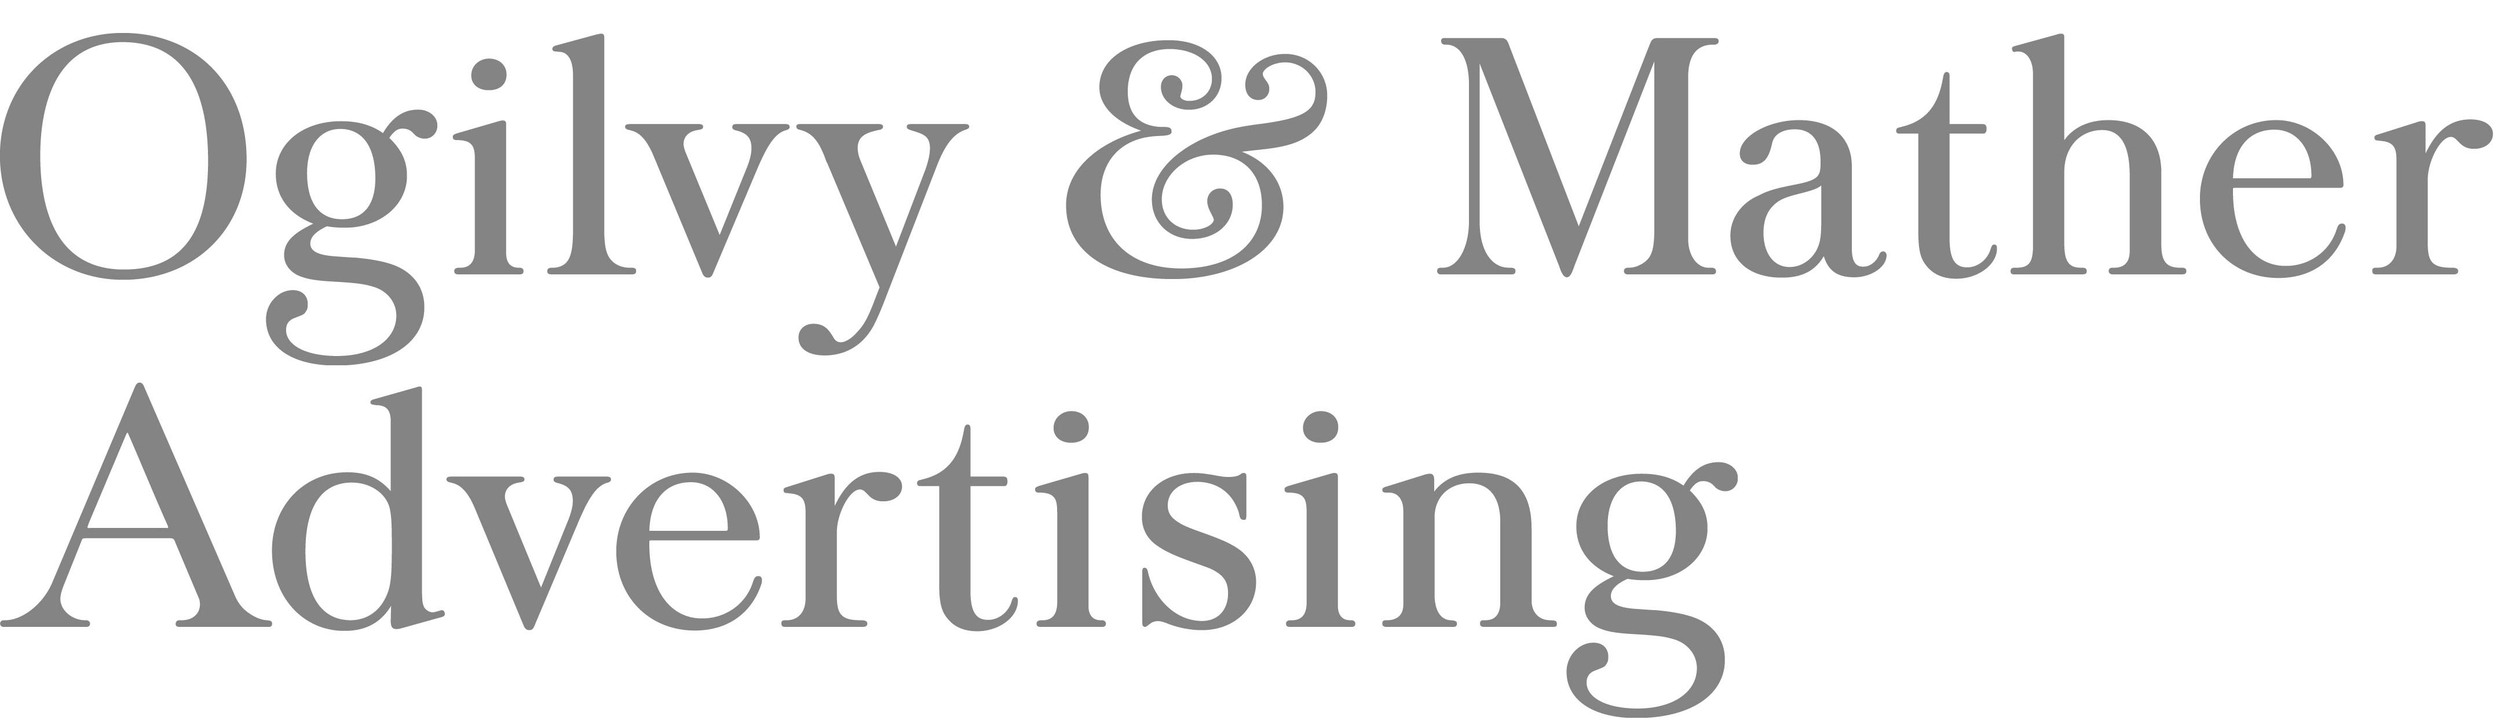 OgilvyMather-Advertising-for-website.jpg